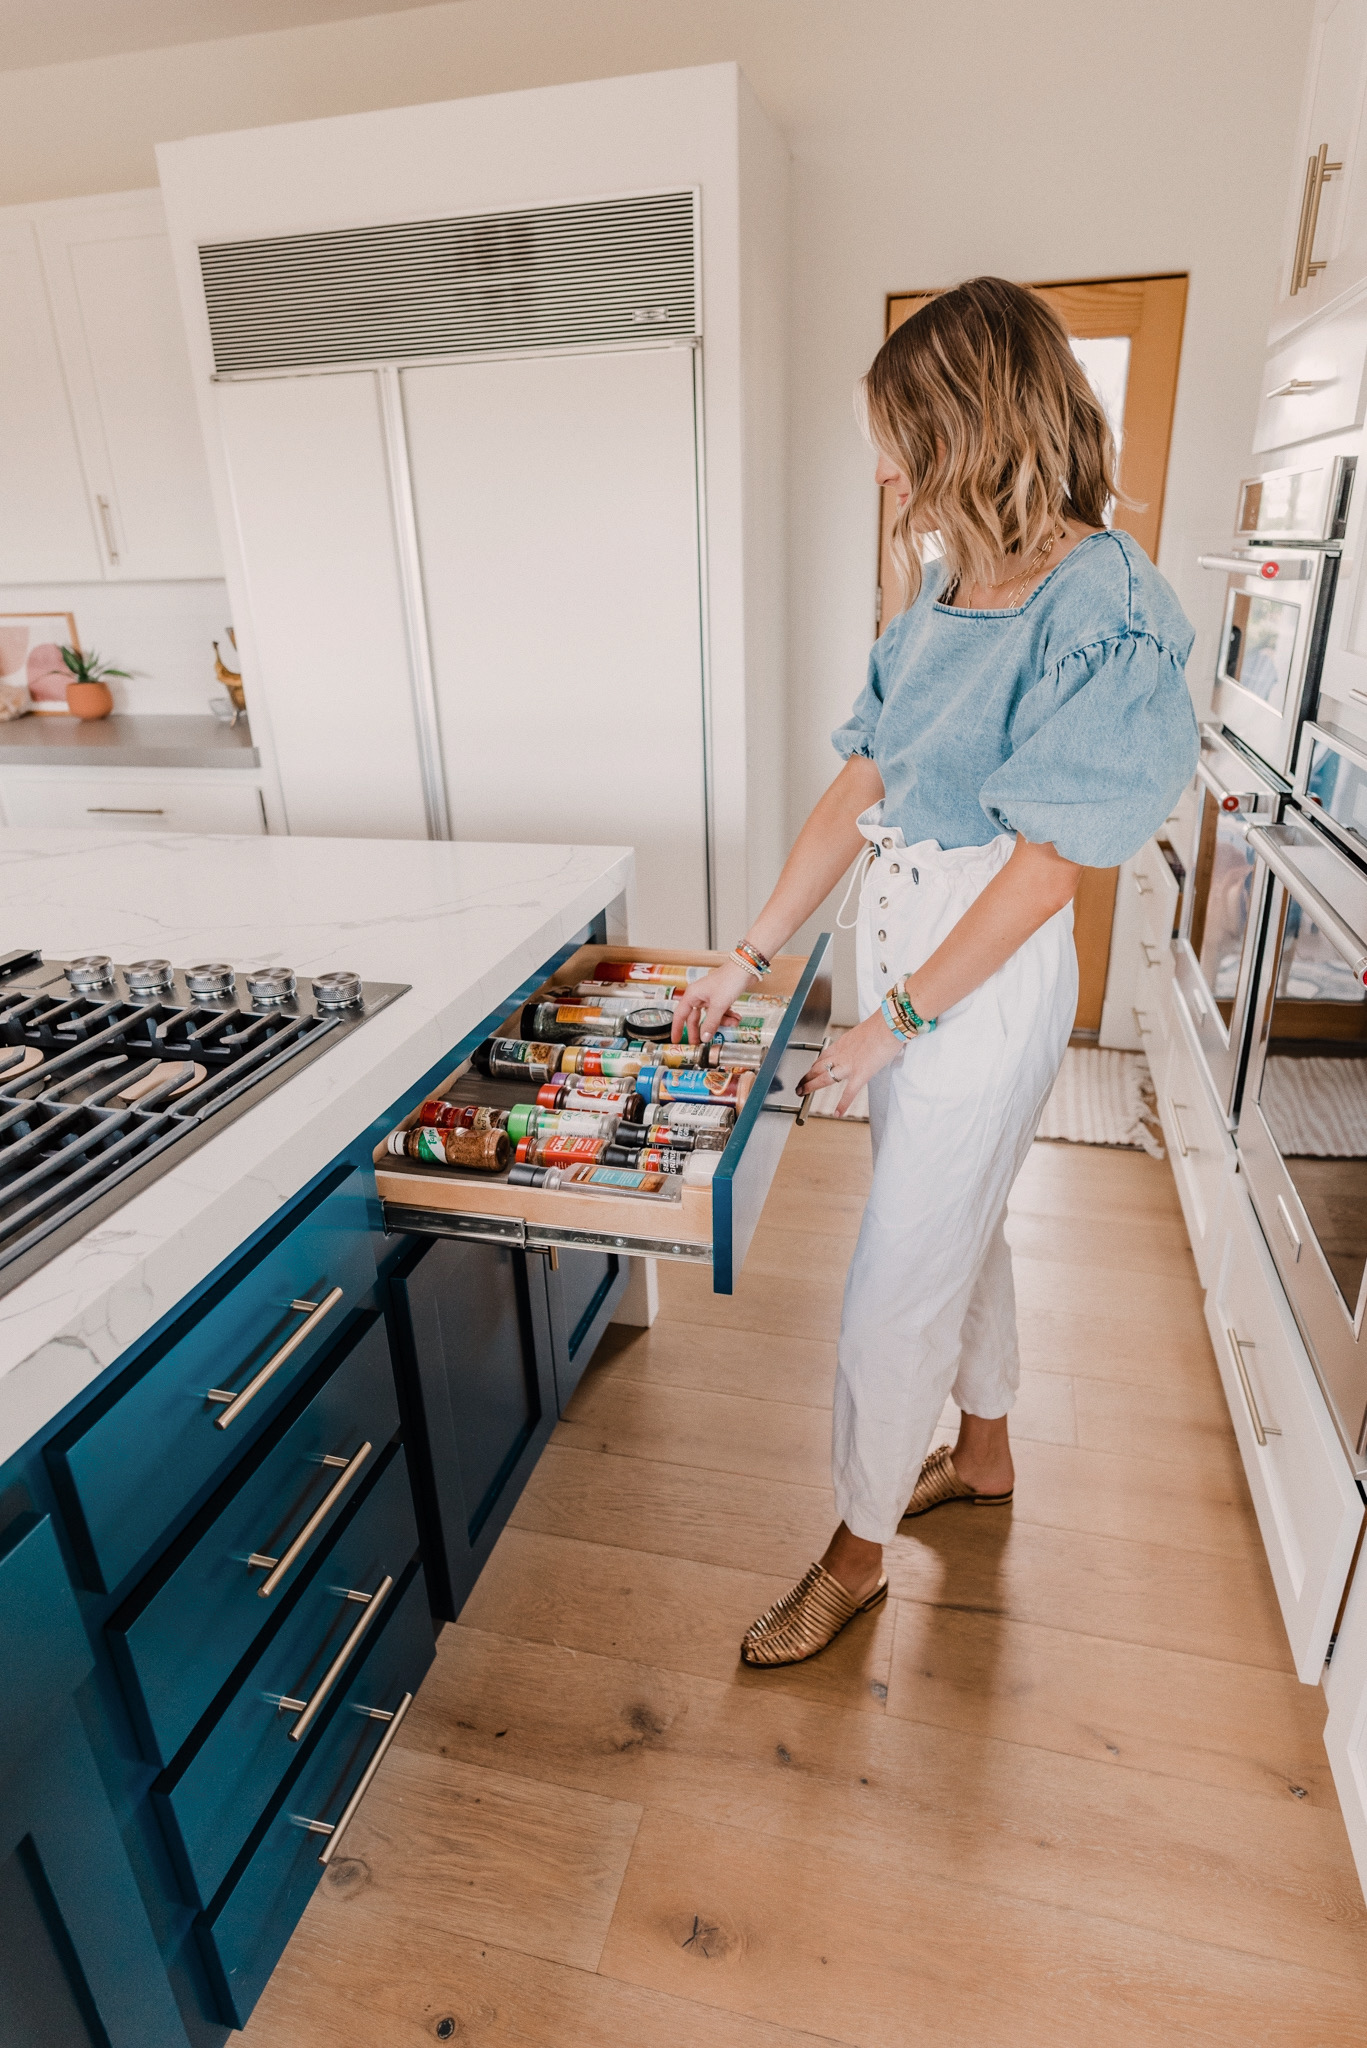 Kitchen Organization Products by popular San Diego life and style blog, Navy Grace: image of a woman wearing a THE ODELLS: EVERLY BUTTON BACK TOP, Urban Outfitters BDG Wisconsin Casual Ecru Pant, and Cecelia GLORIA mule while looking in her organized spice drawer.